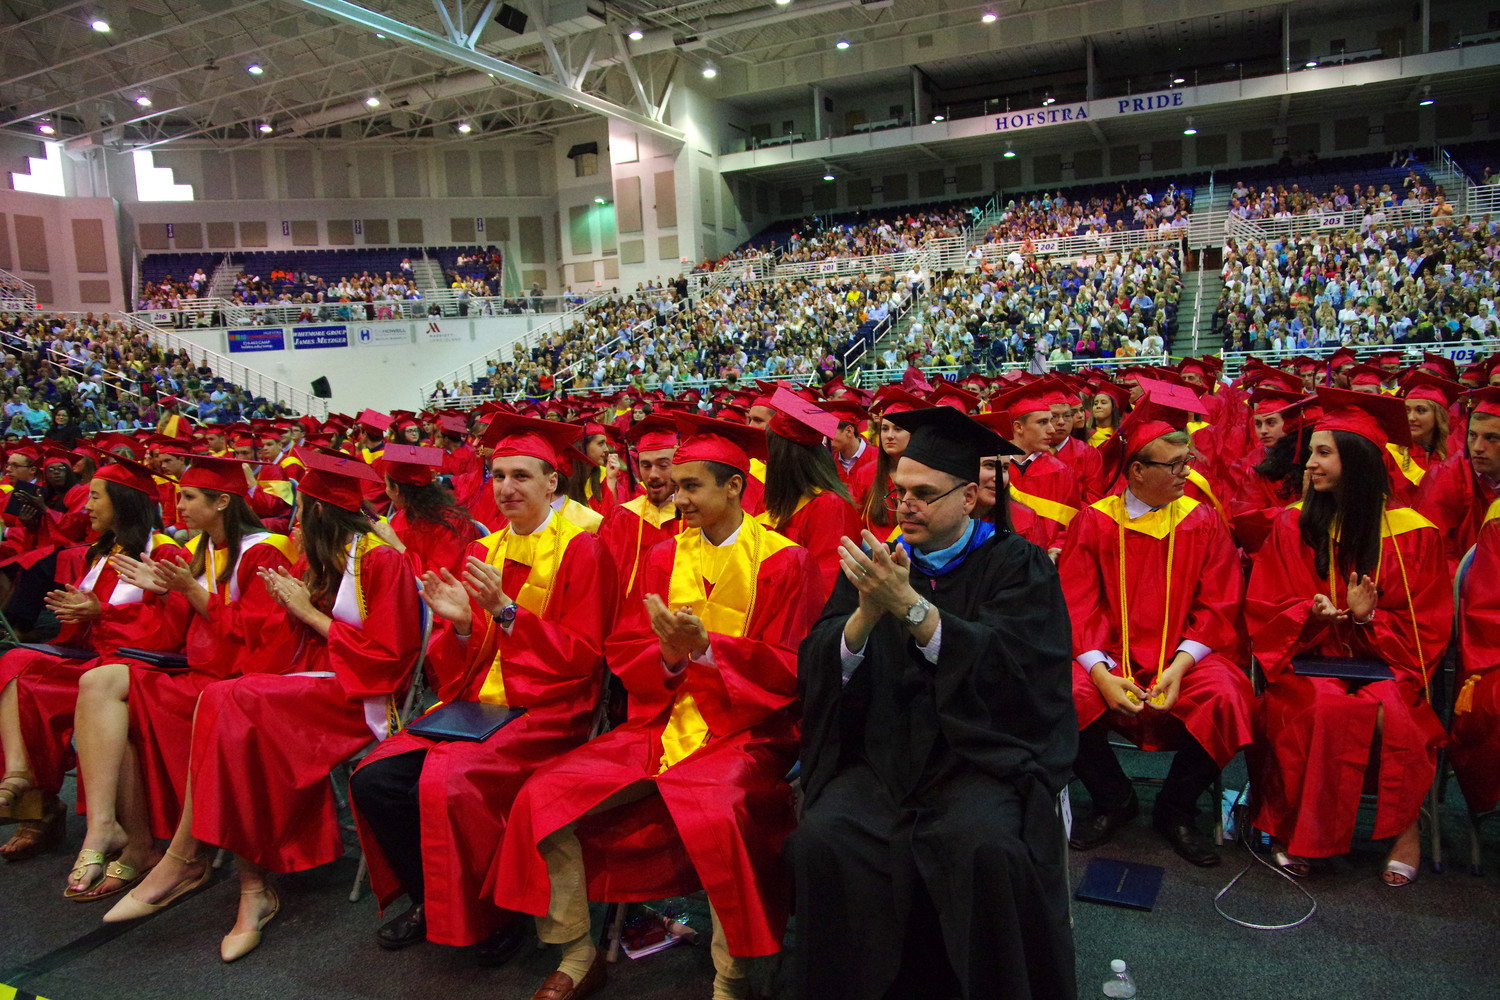 Nearly 300 South Side High School seniors graduated on June 22 at a commencement ceremony at Hofstra University.